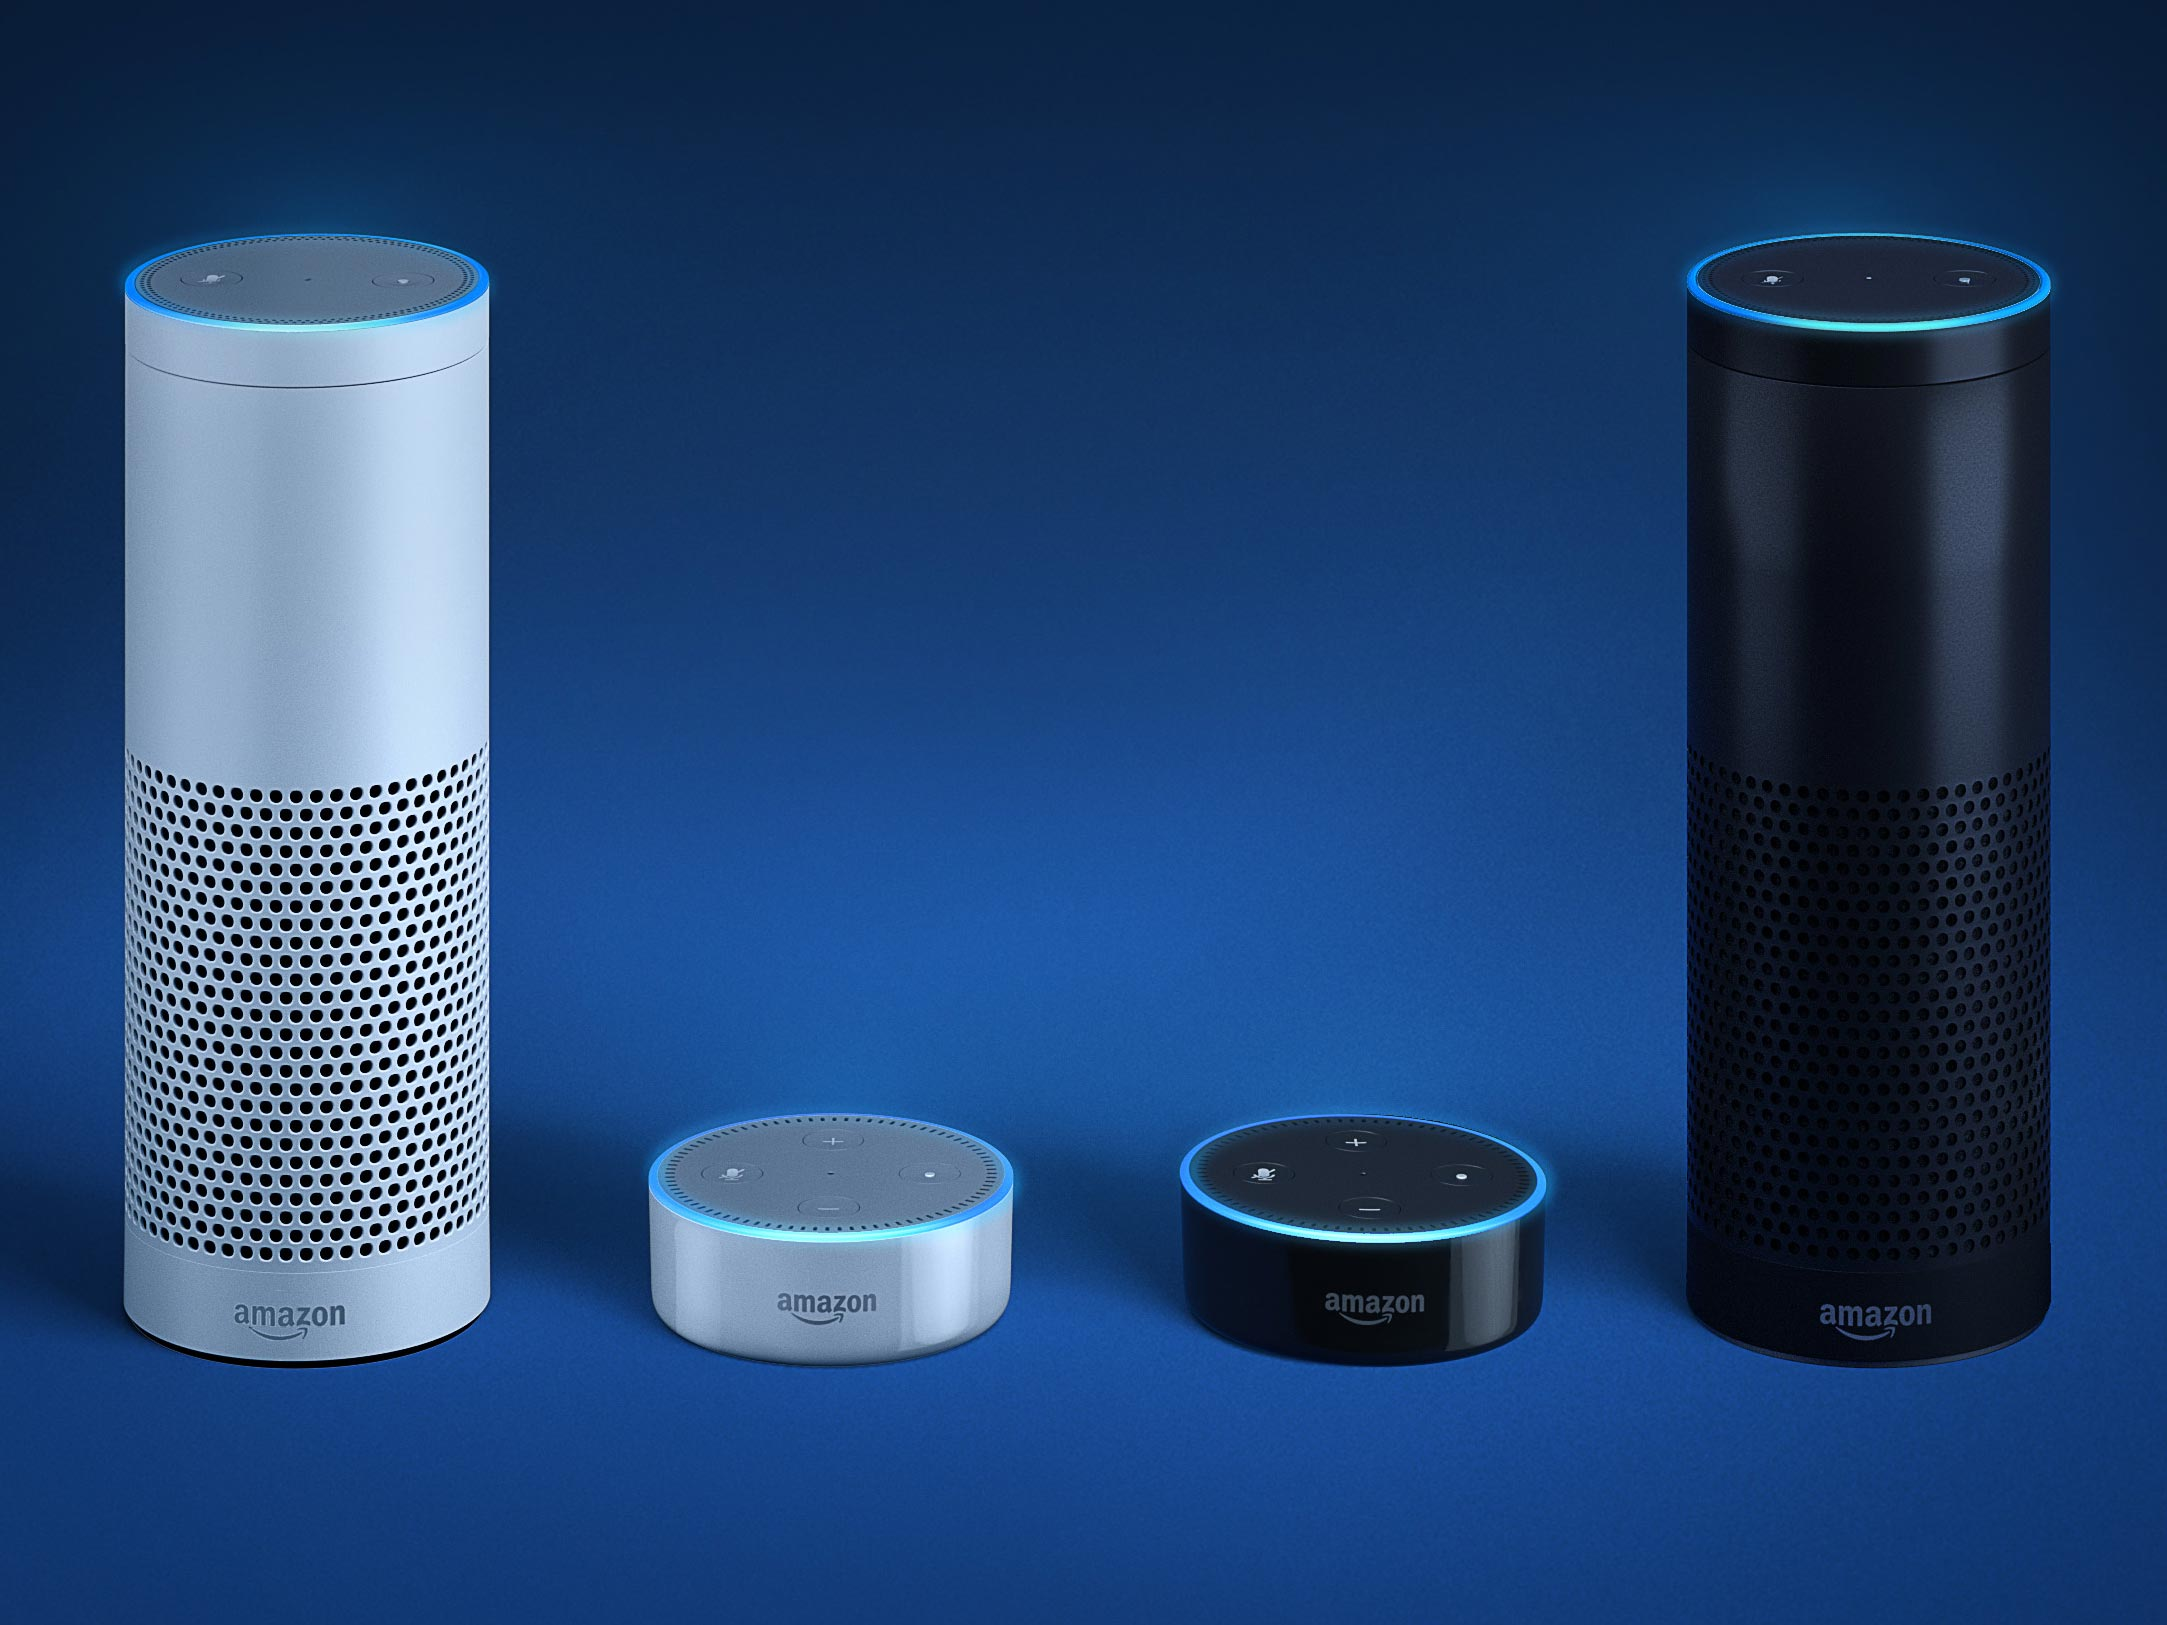 Tom Taylor Svp Amazon Alexa Amazon Linkedin Amazon Canada Launches Alexa Pre Orders For Echo Echo Dot And